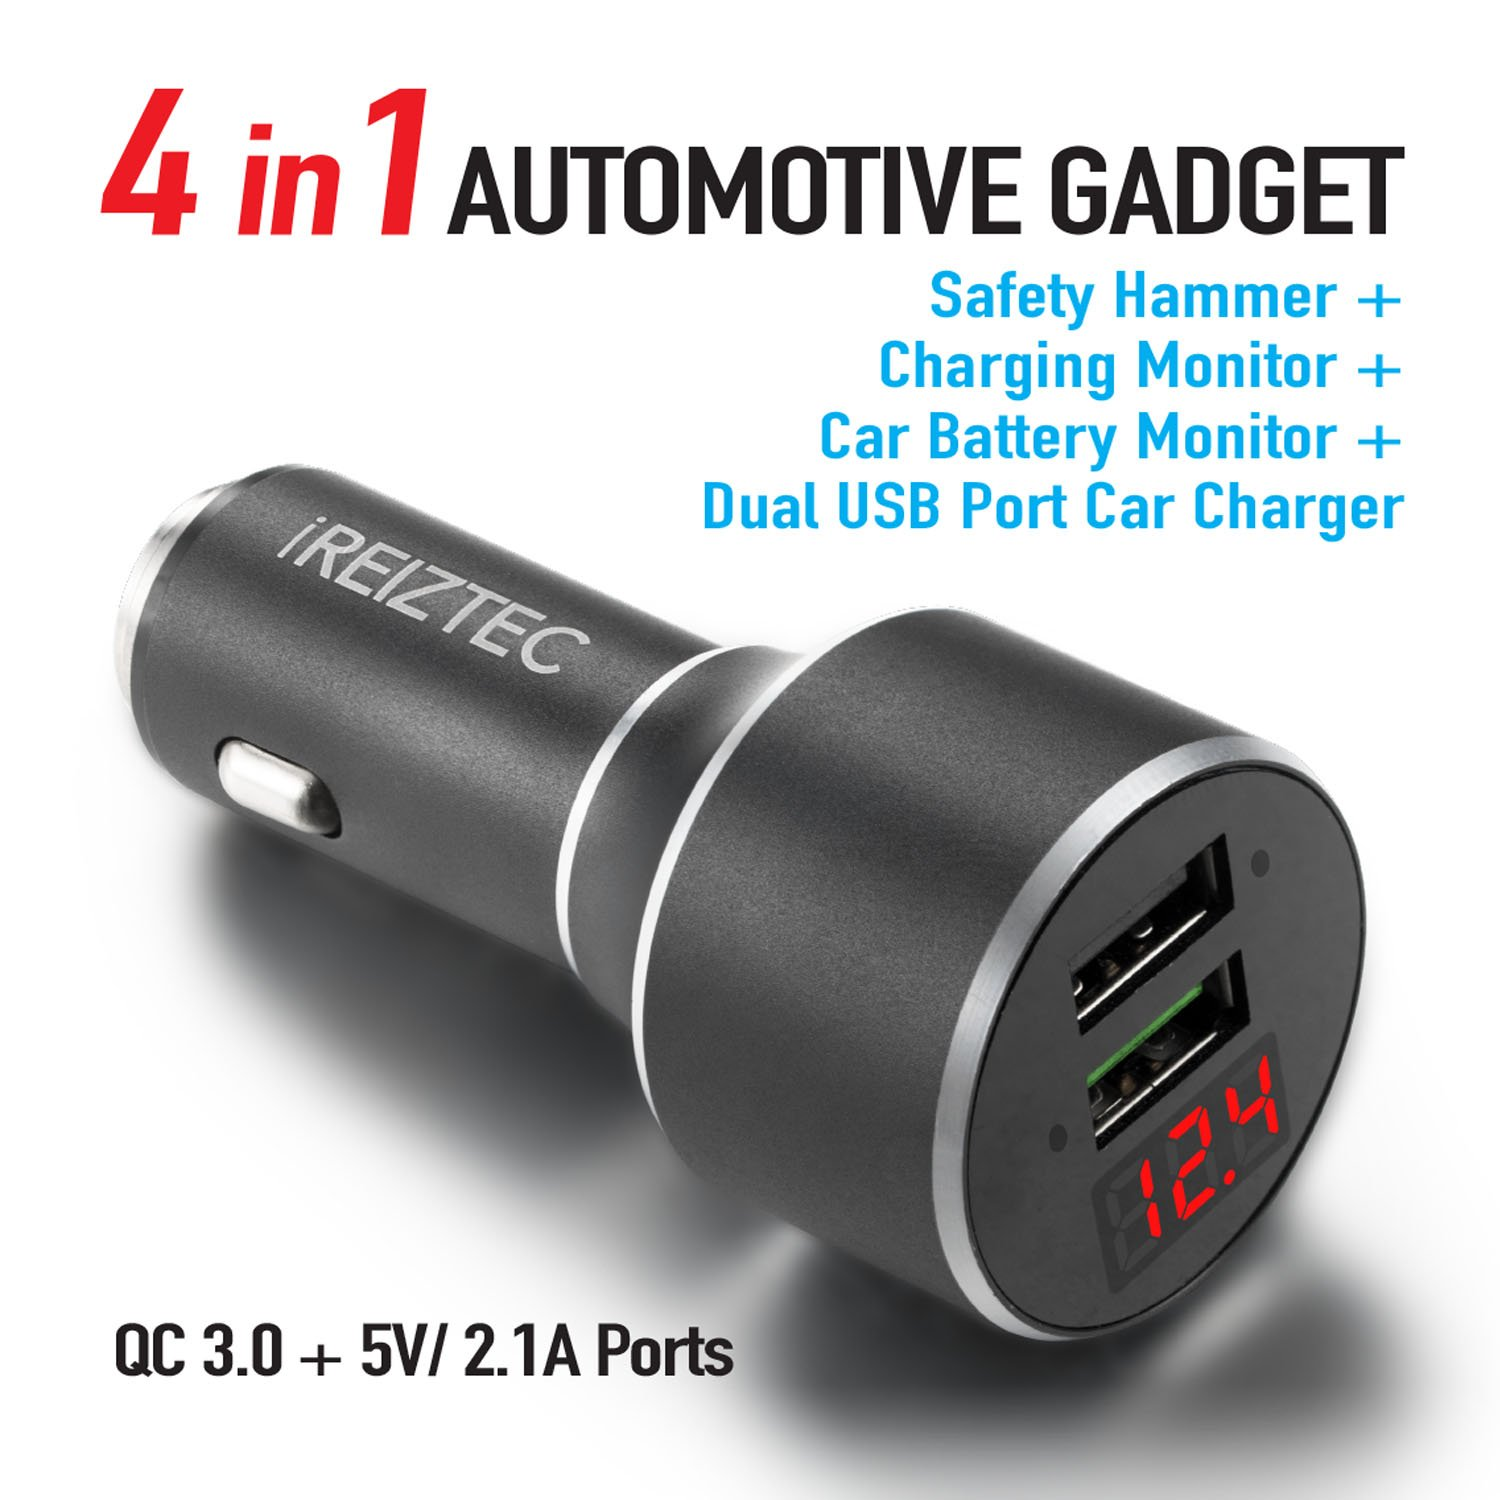 iREIZTEC 34W Dual USB Car Charger, w/Safety Hammer, QC 3.0 & 5V/2.1A Ports for iPhone X 8 7 6S 6 Plus, iPad Pro Air, Galaxy S9 S8 S7 S6 Edge Plus Note 8, LG G6 V10, Nexus Pixel & More (Black) RMC34W01